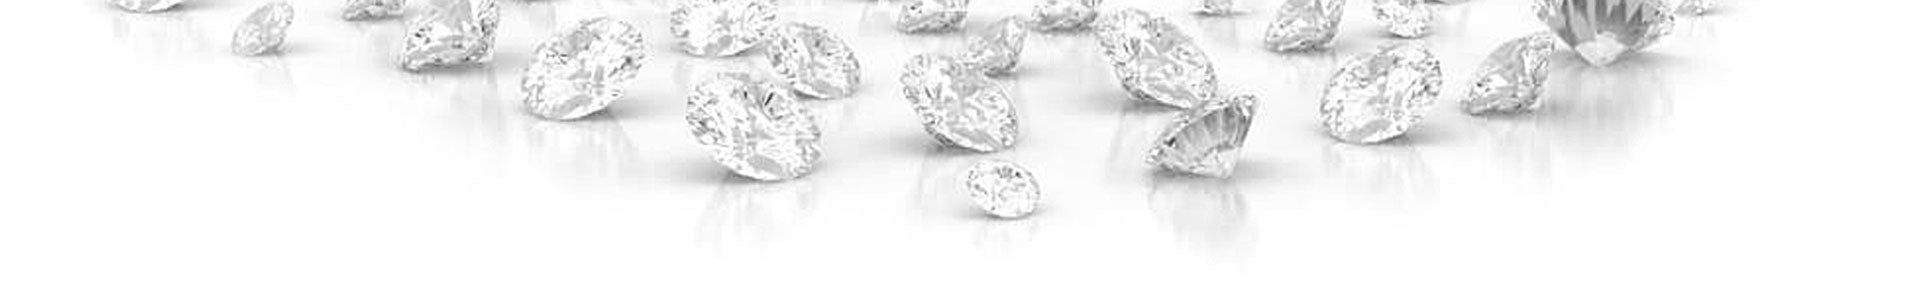 diamond noble search aruba jewelers oranjestad dutch caribbean